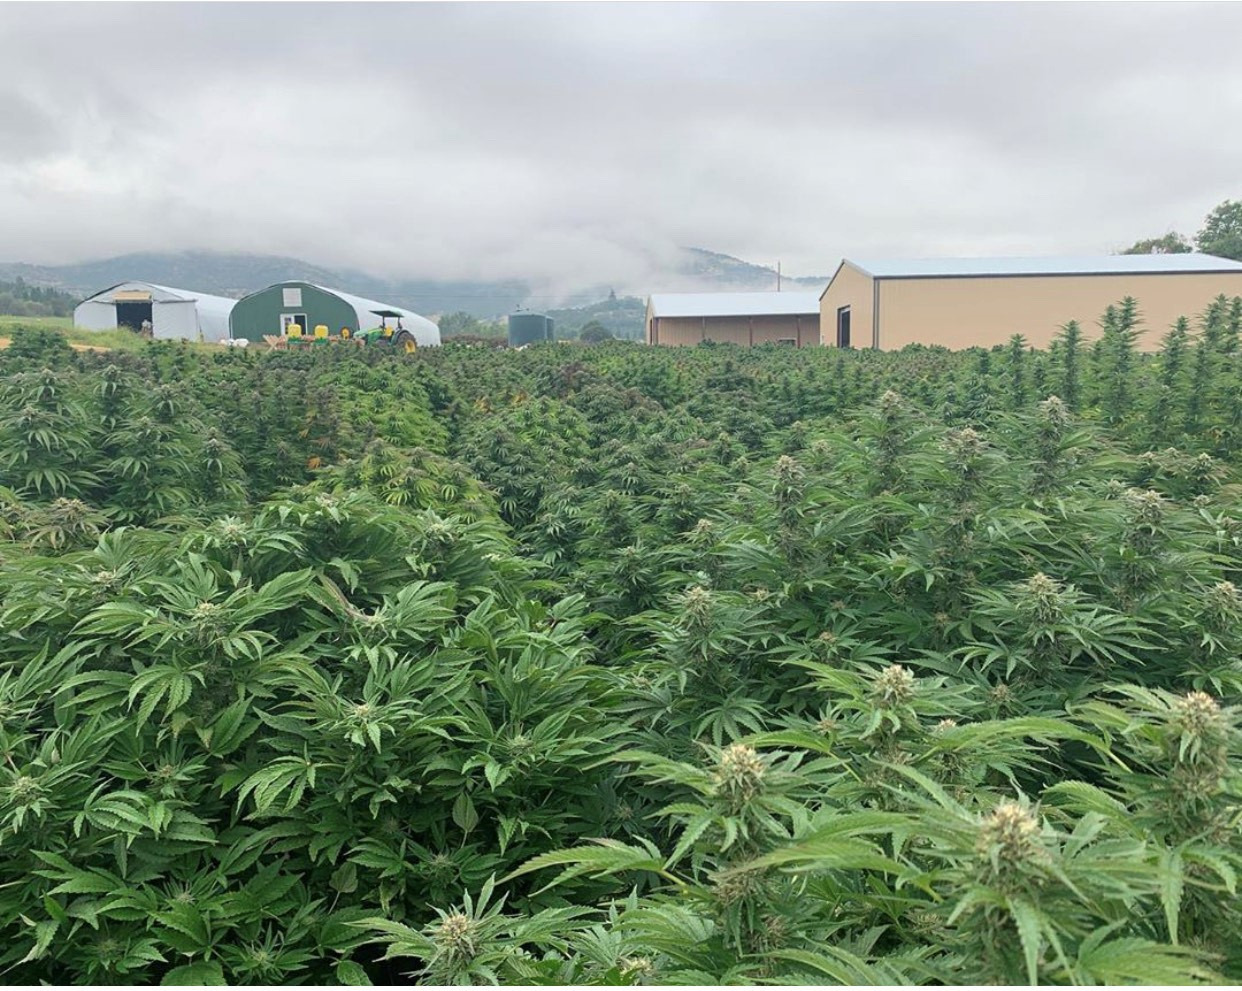 What You Should Know About Recreational Cannabis in Oregon